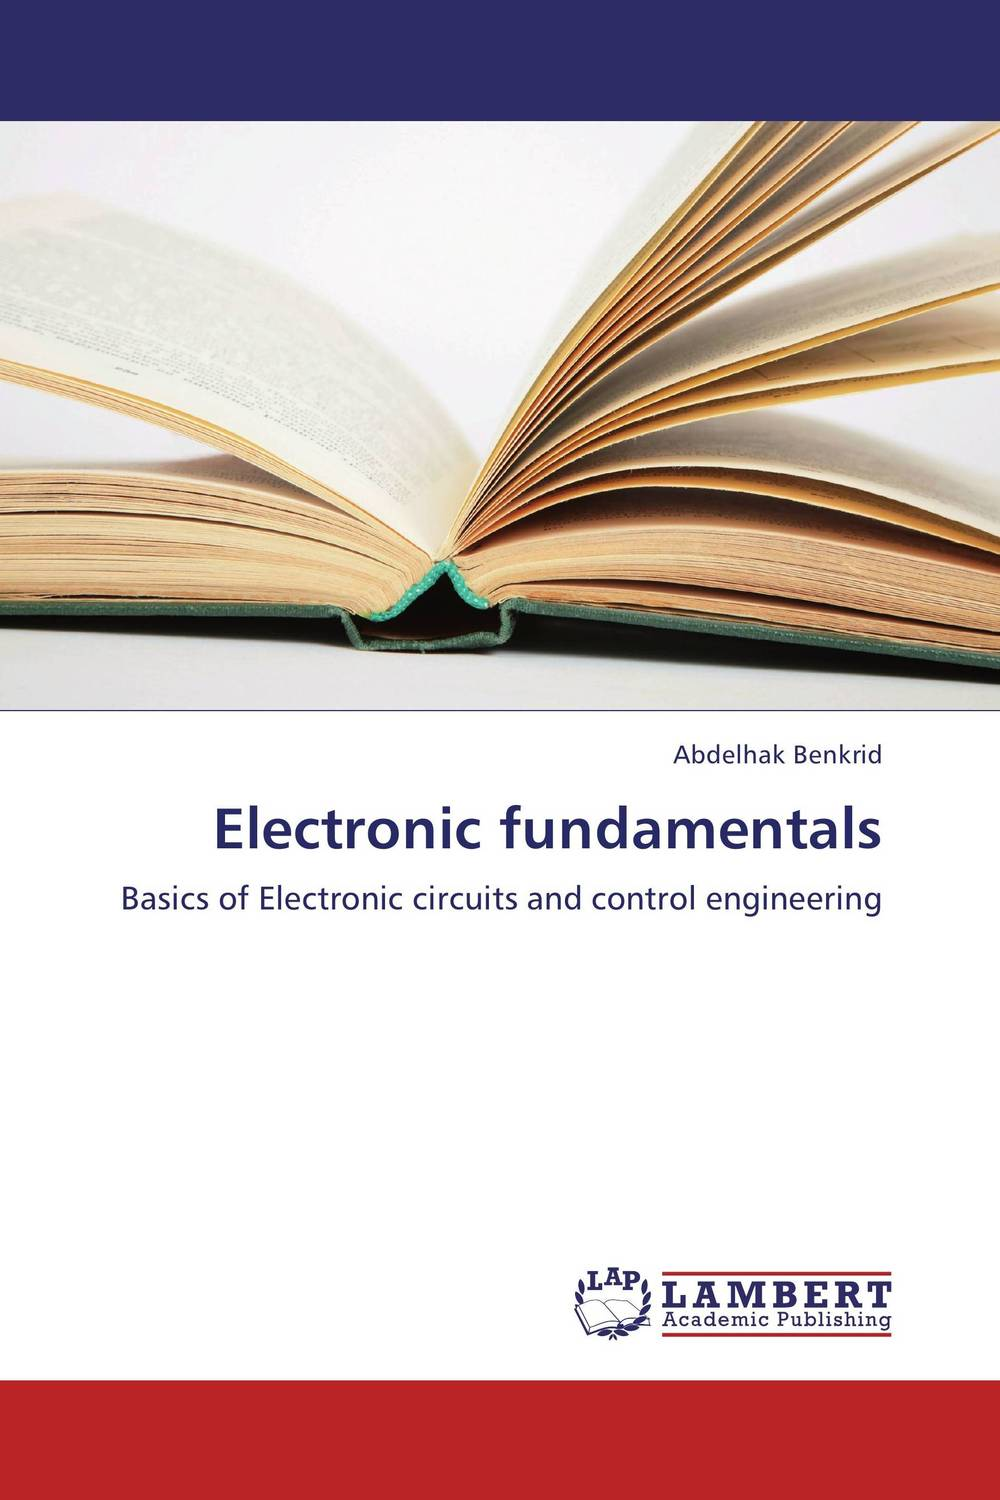 Electronic fundamentals fundamentals of physics extended 9th edition international student version with wileyplus set